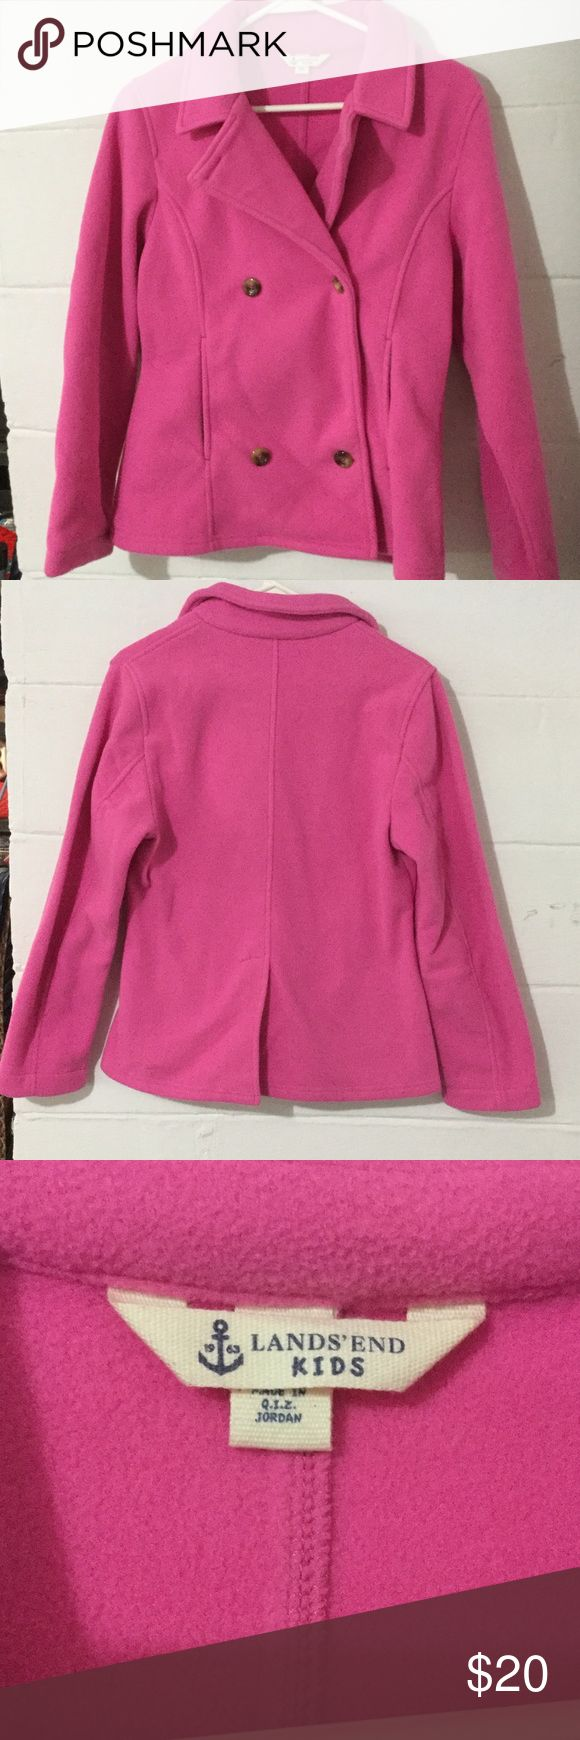 Land's End size large girl's peacoat Large girl's Land's End pink peacoat. Excellent condition Lands' End Jackets & Coats